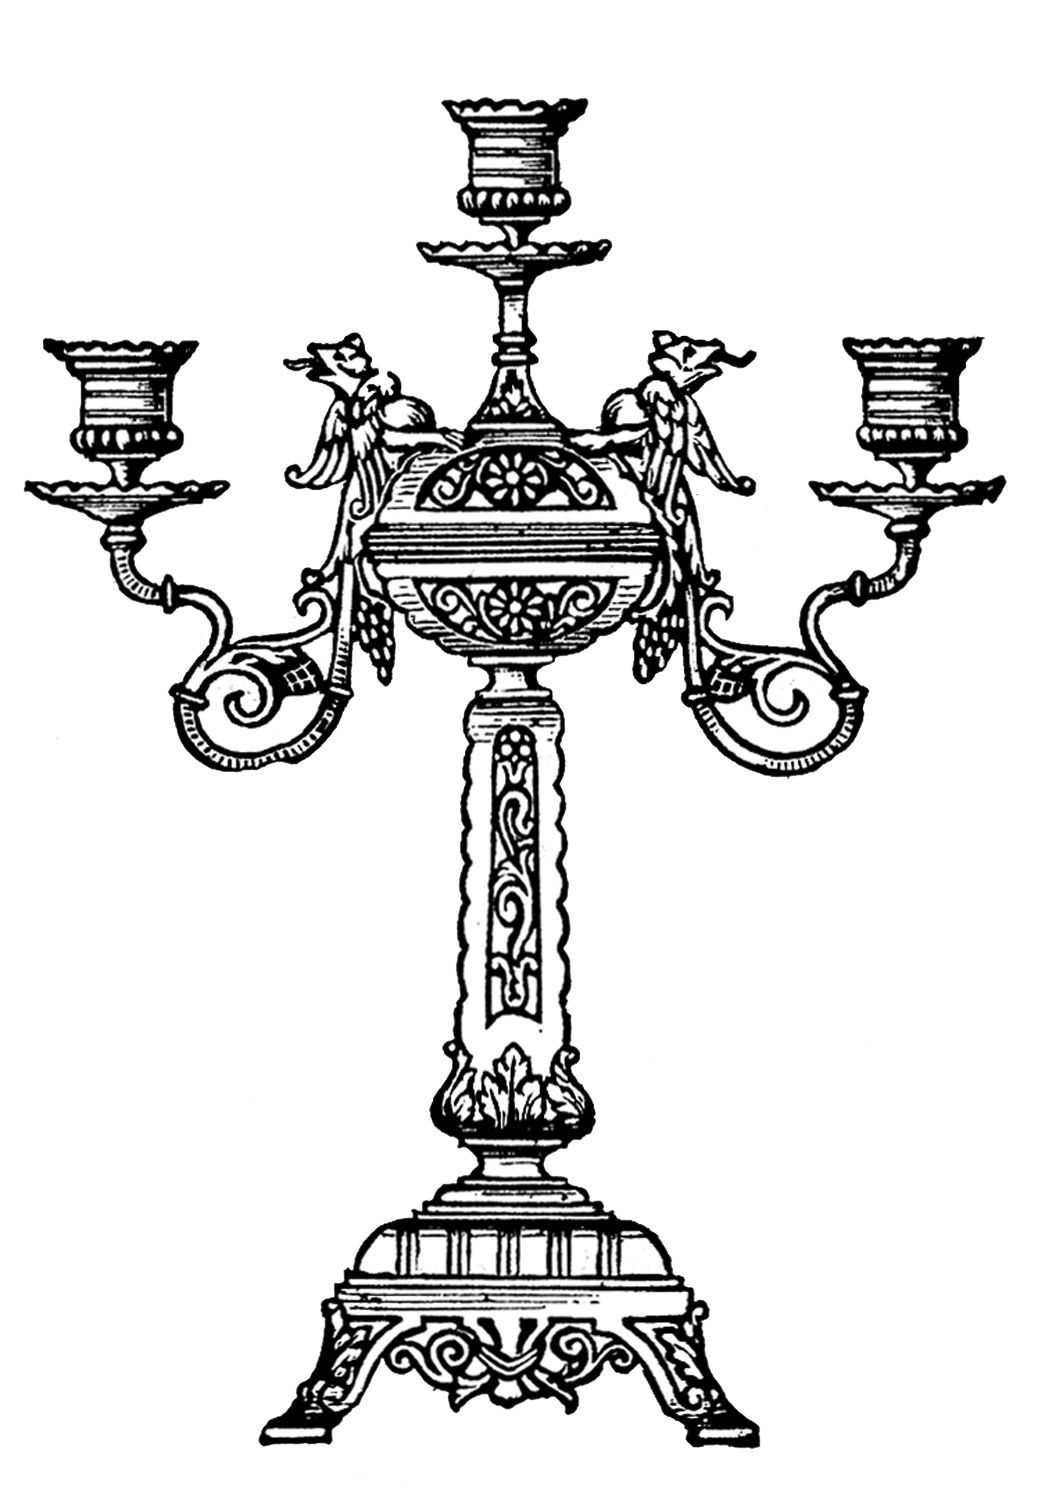 Candelabra clipart svg black and white library Vintage Clip Art - Ornate Candelabra | Clip Art | Clip art, Graphics ... svg black and white library